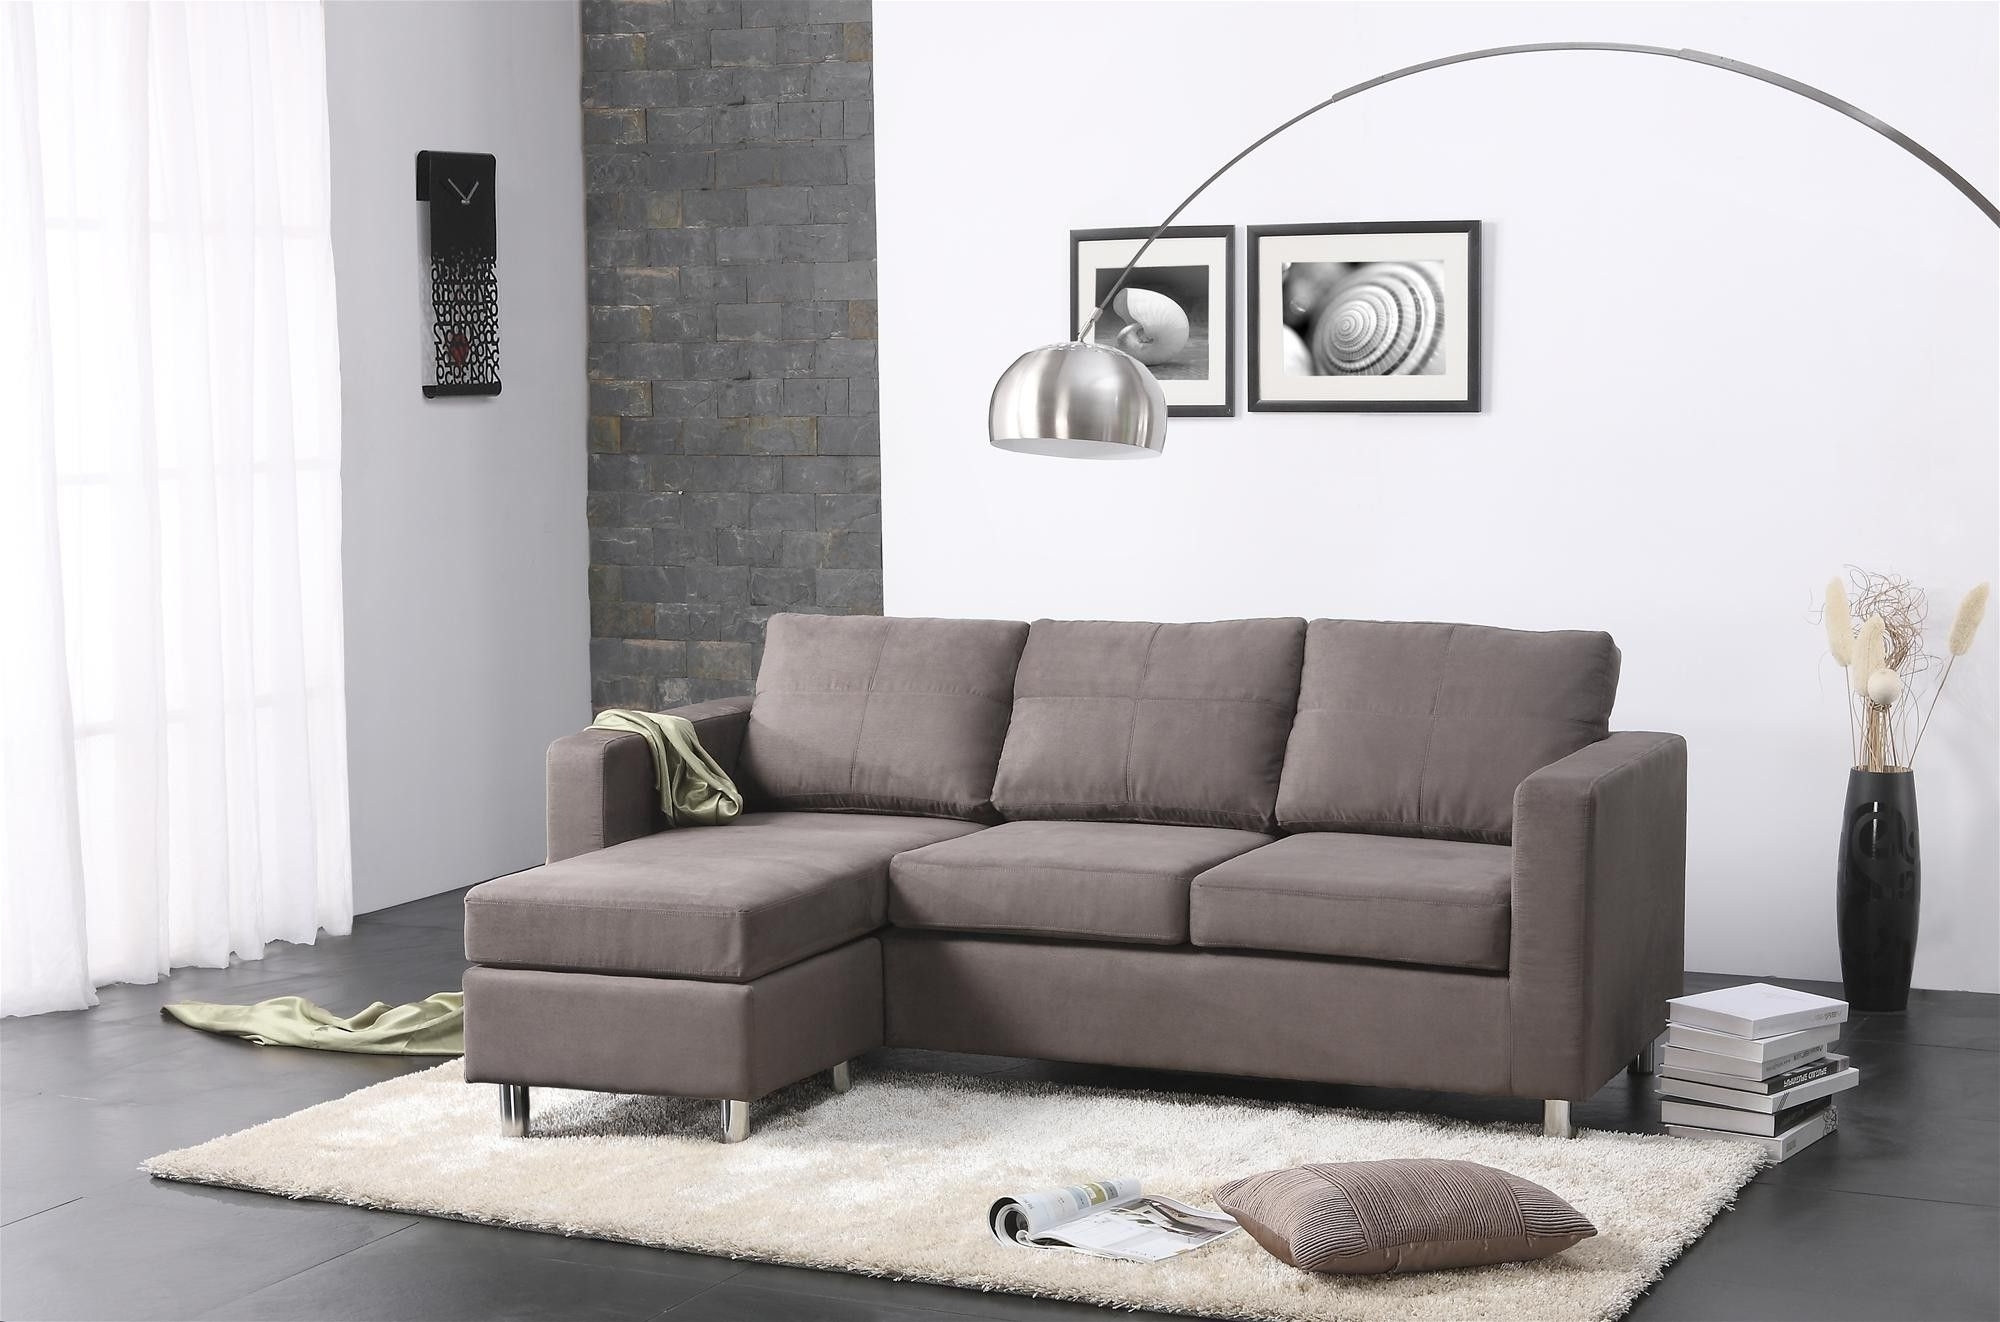 Best And Newest Canada Sectional Sofas For Small Spaces Throughout Amazing Modern Small Spaces Living Room Decors With Grey Sectional (View 3 of 15)